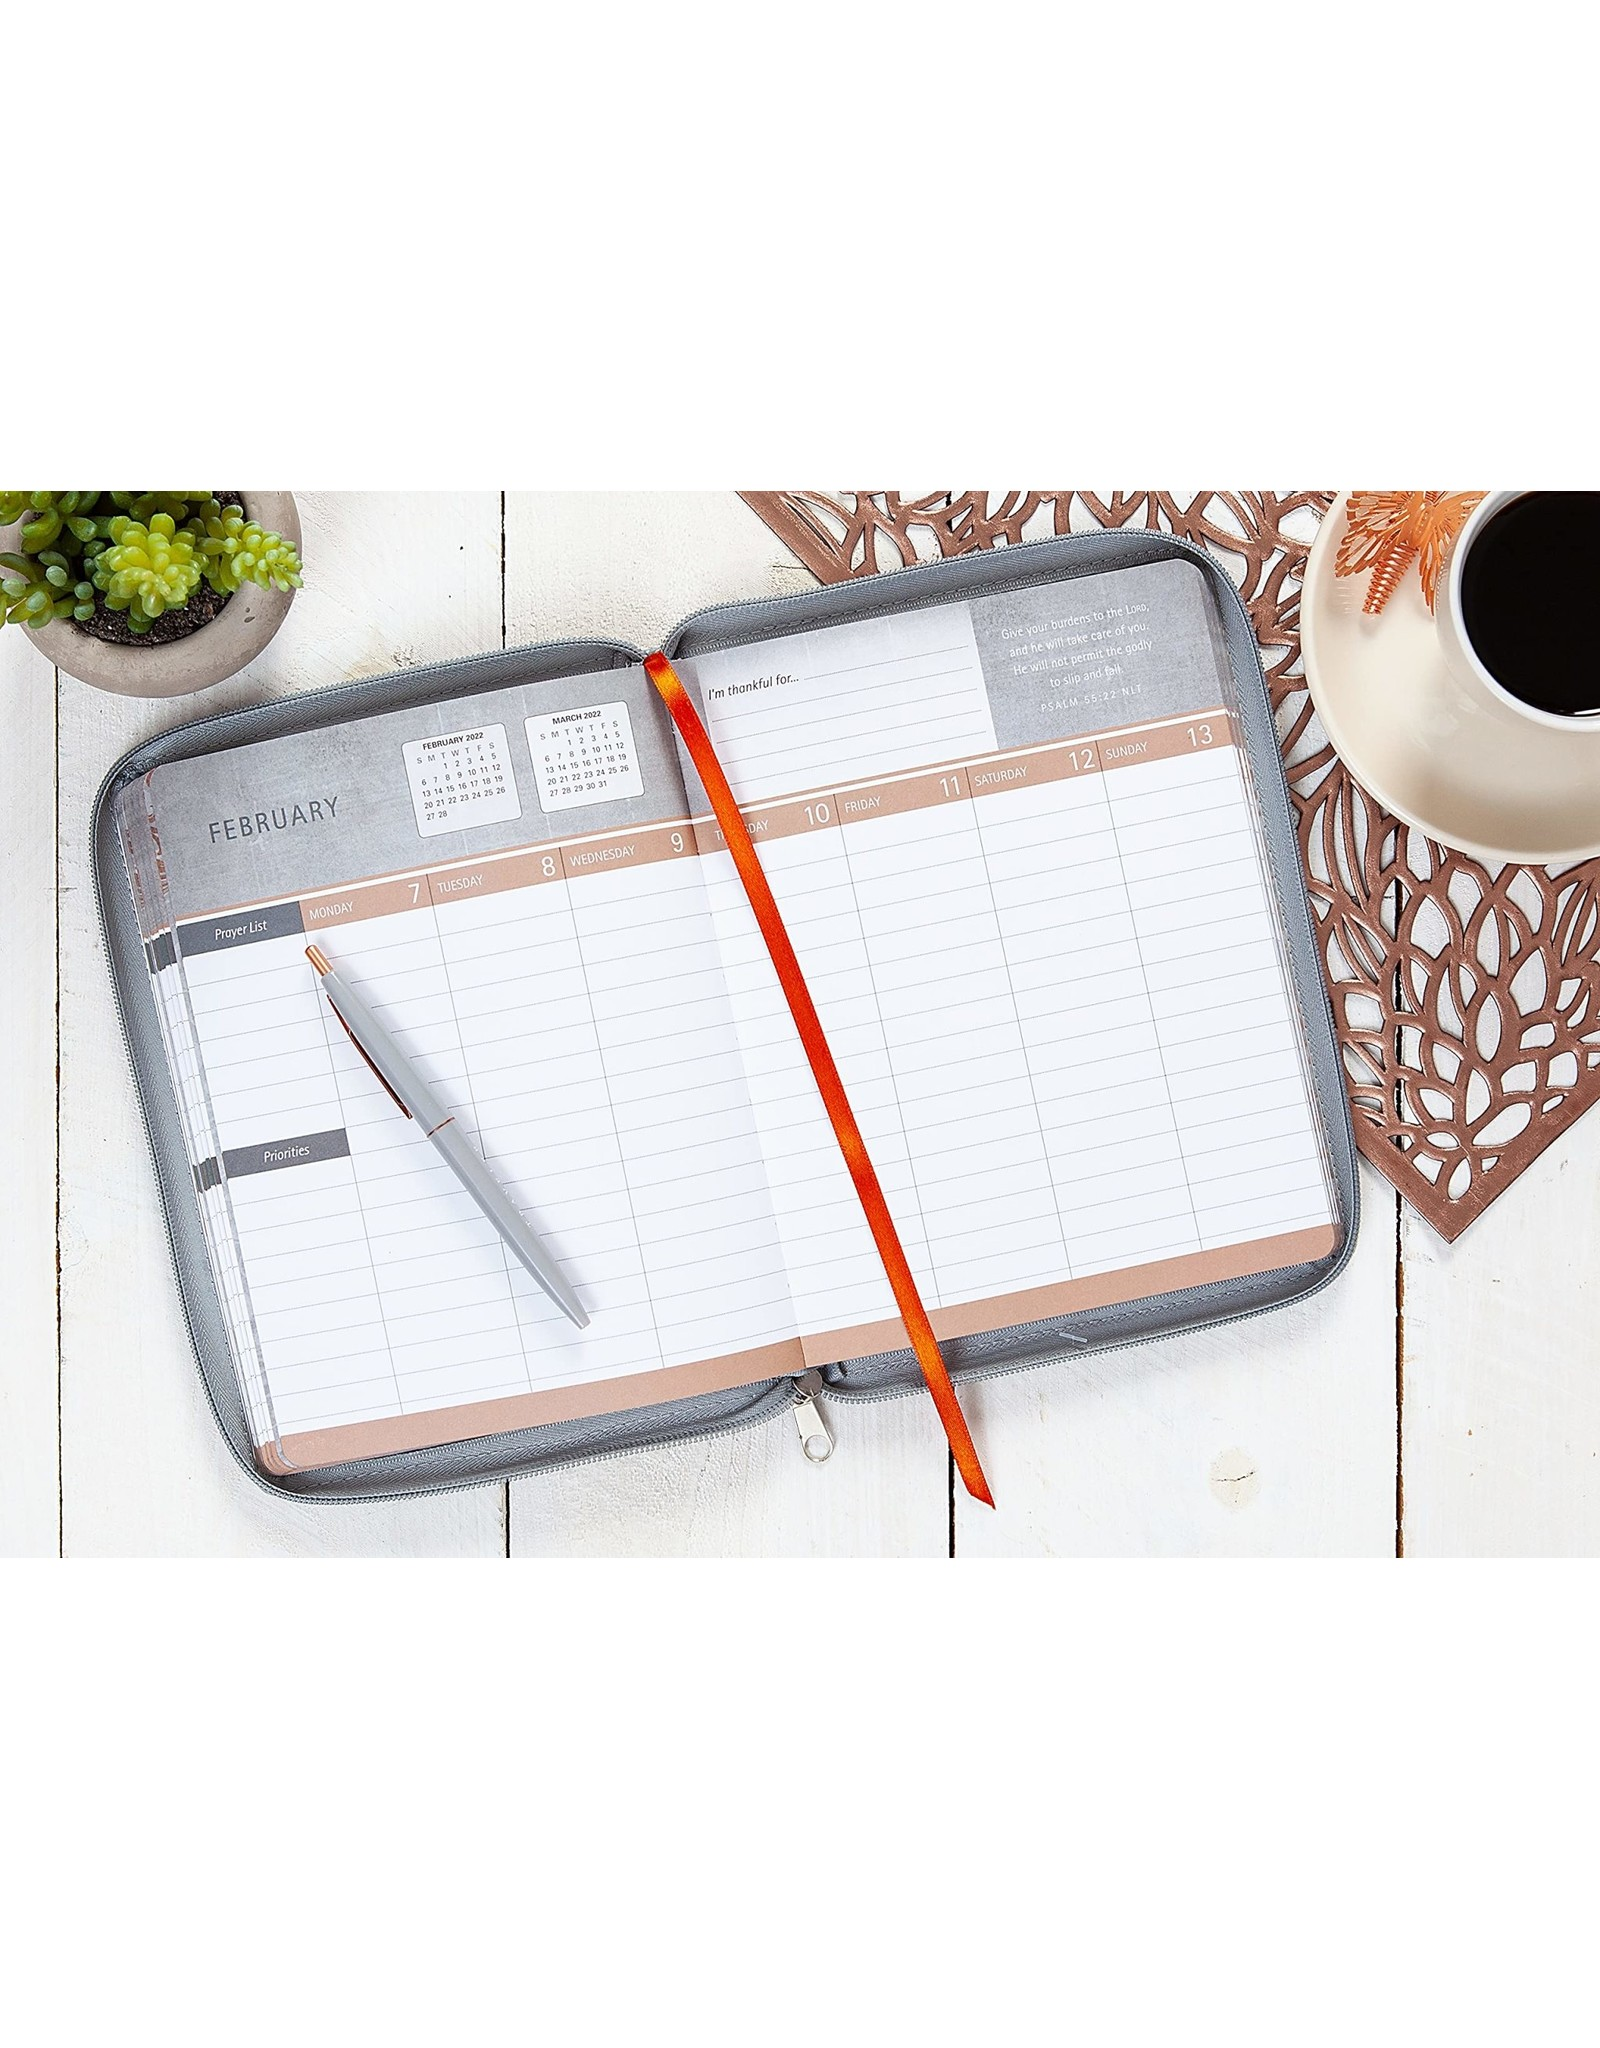 Be Still + Plan- 18 month Planner 2022 -Imitation Leather